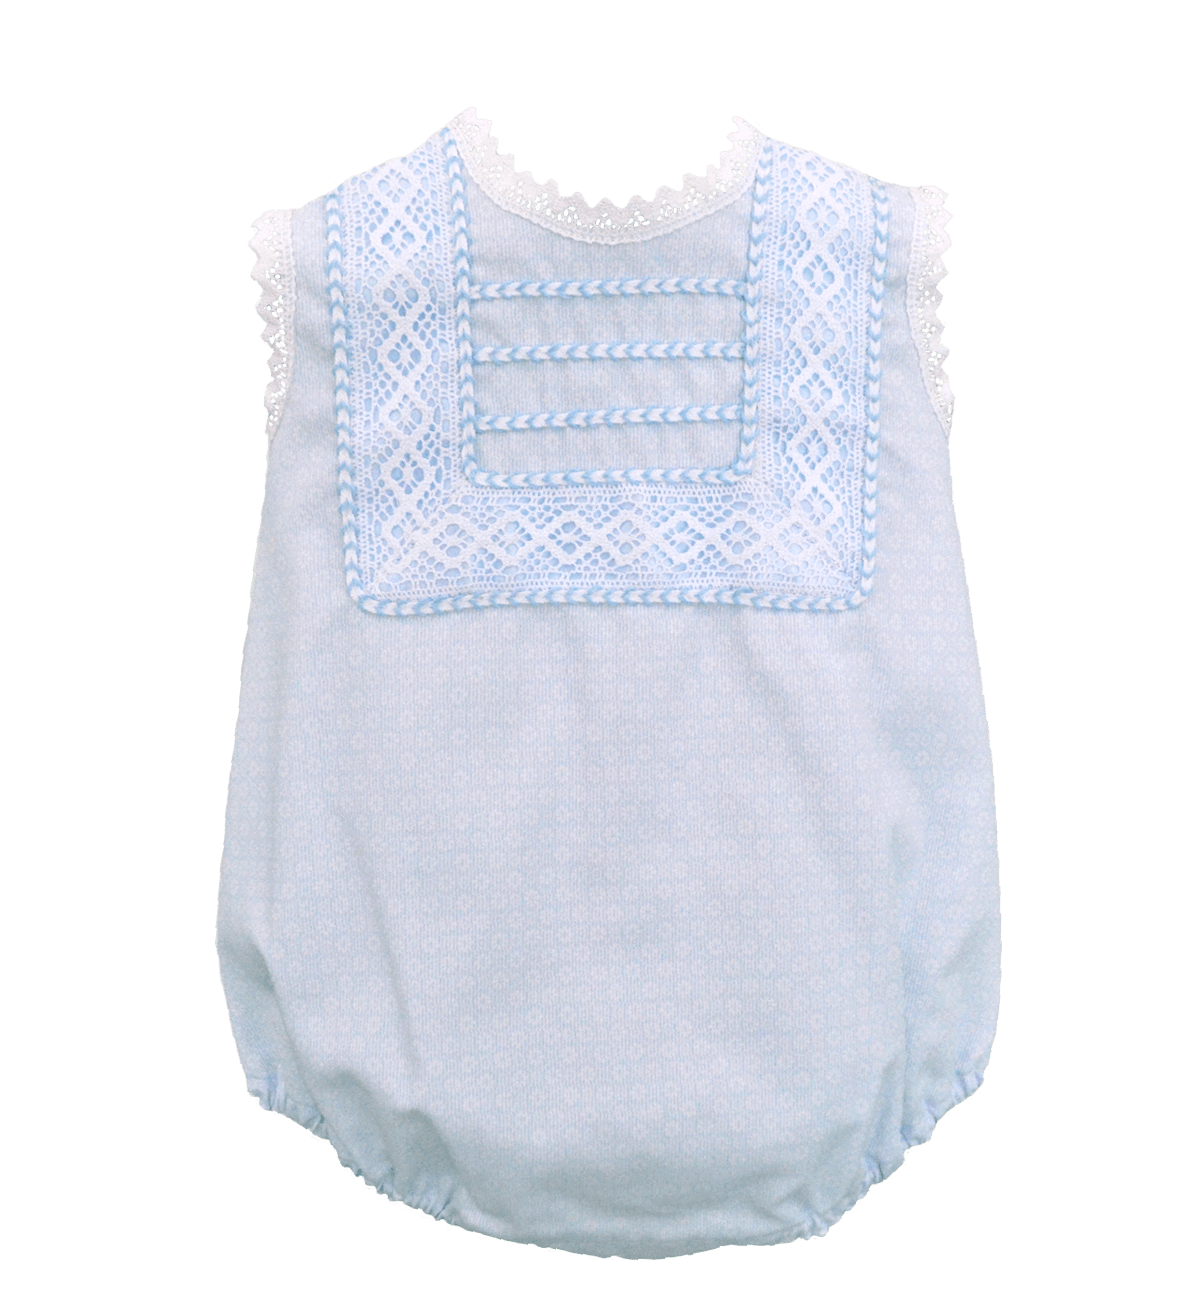 Spanish baby clothes | baby Christening dress | Blue & white Christening romper (baby boy) |babymaC  - 1